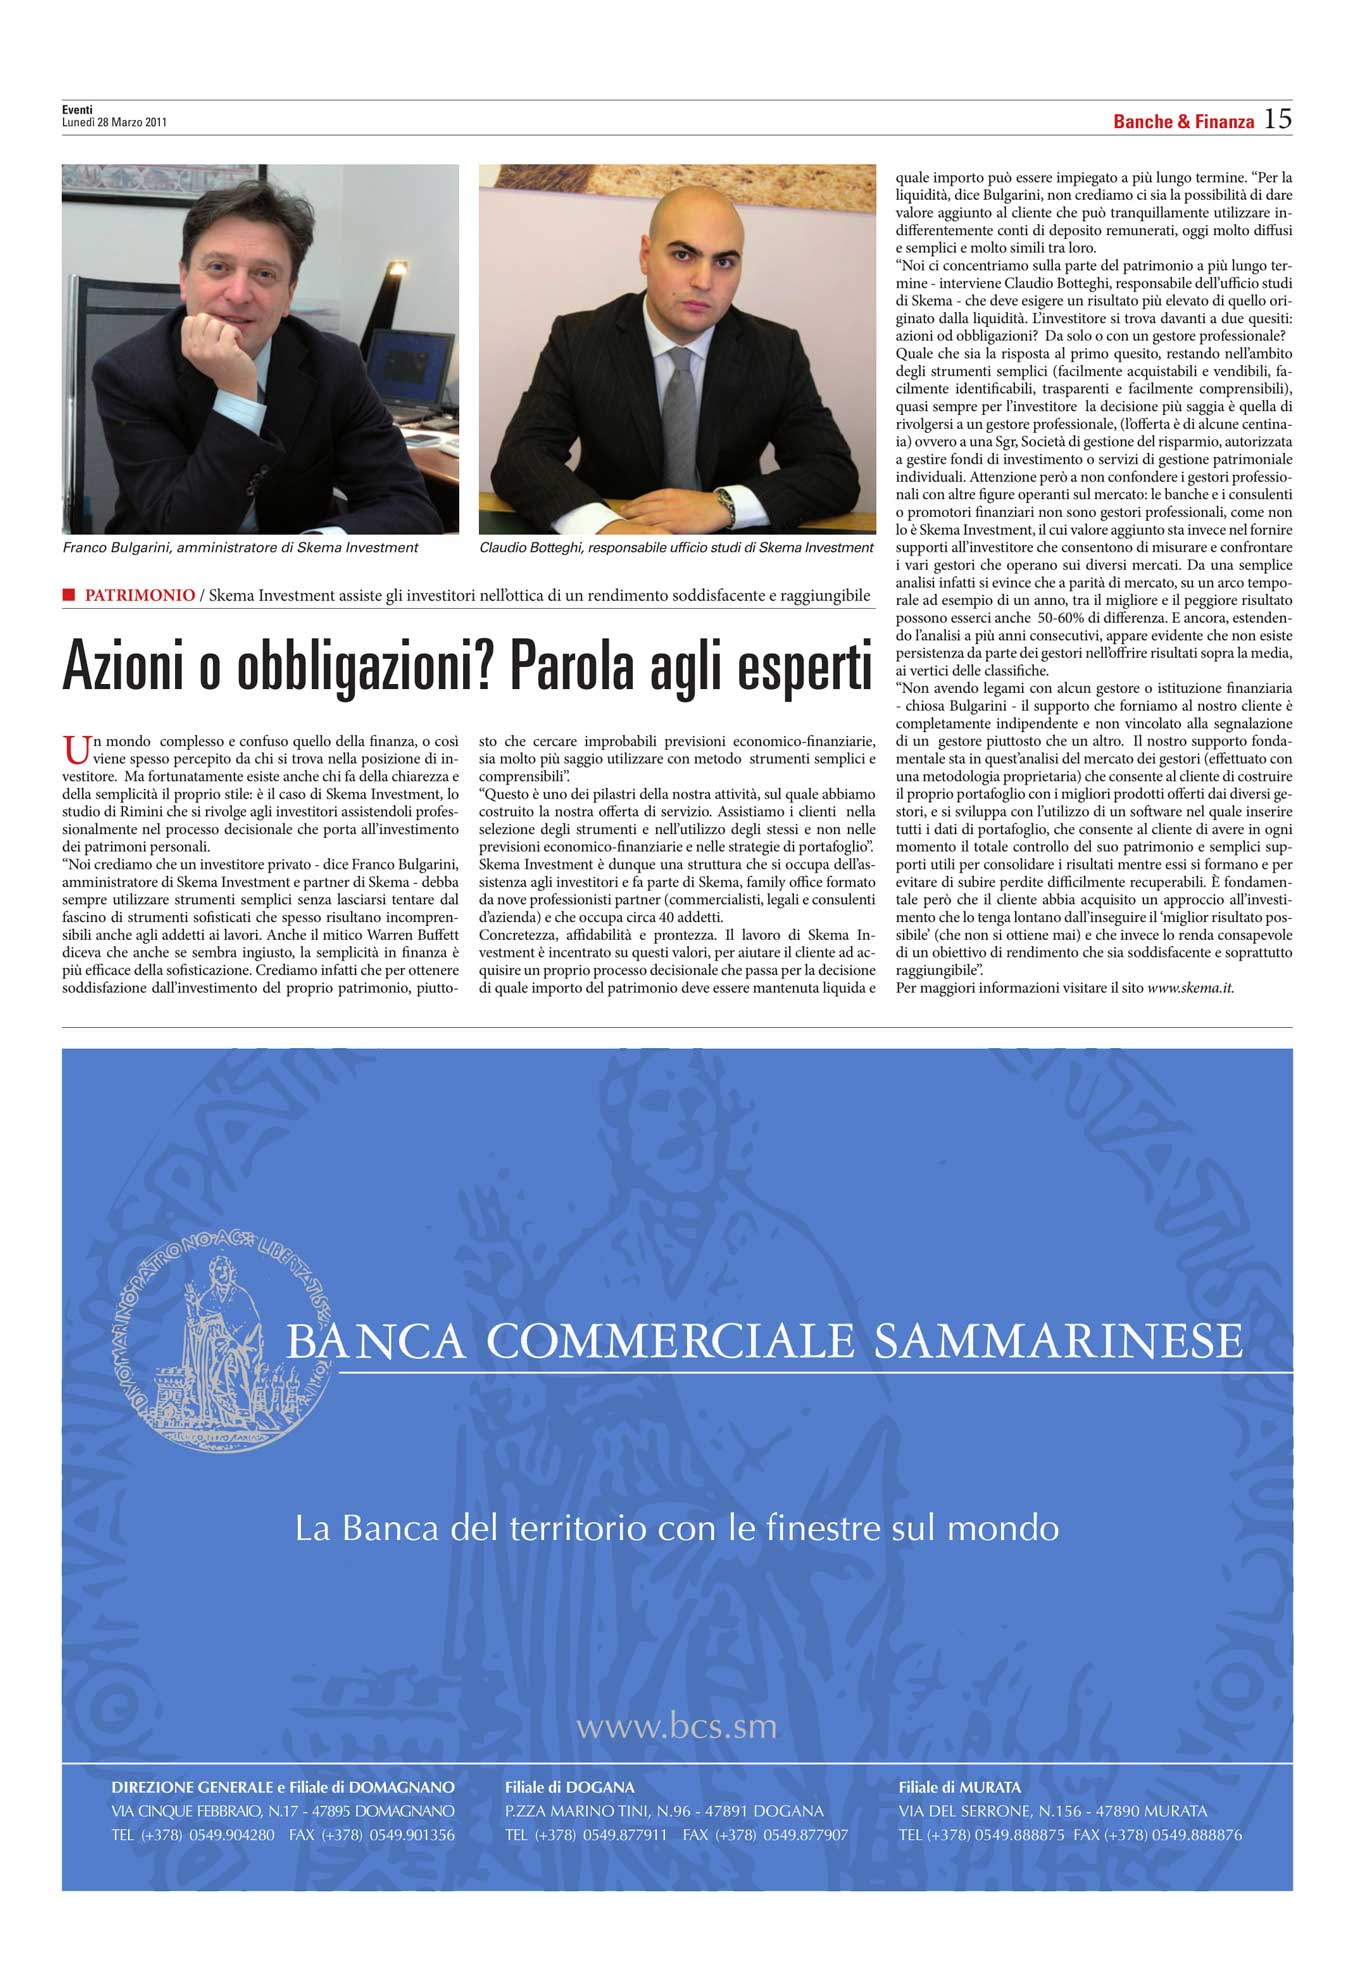 9 dots intervistati da il Sole 24 Ore